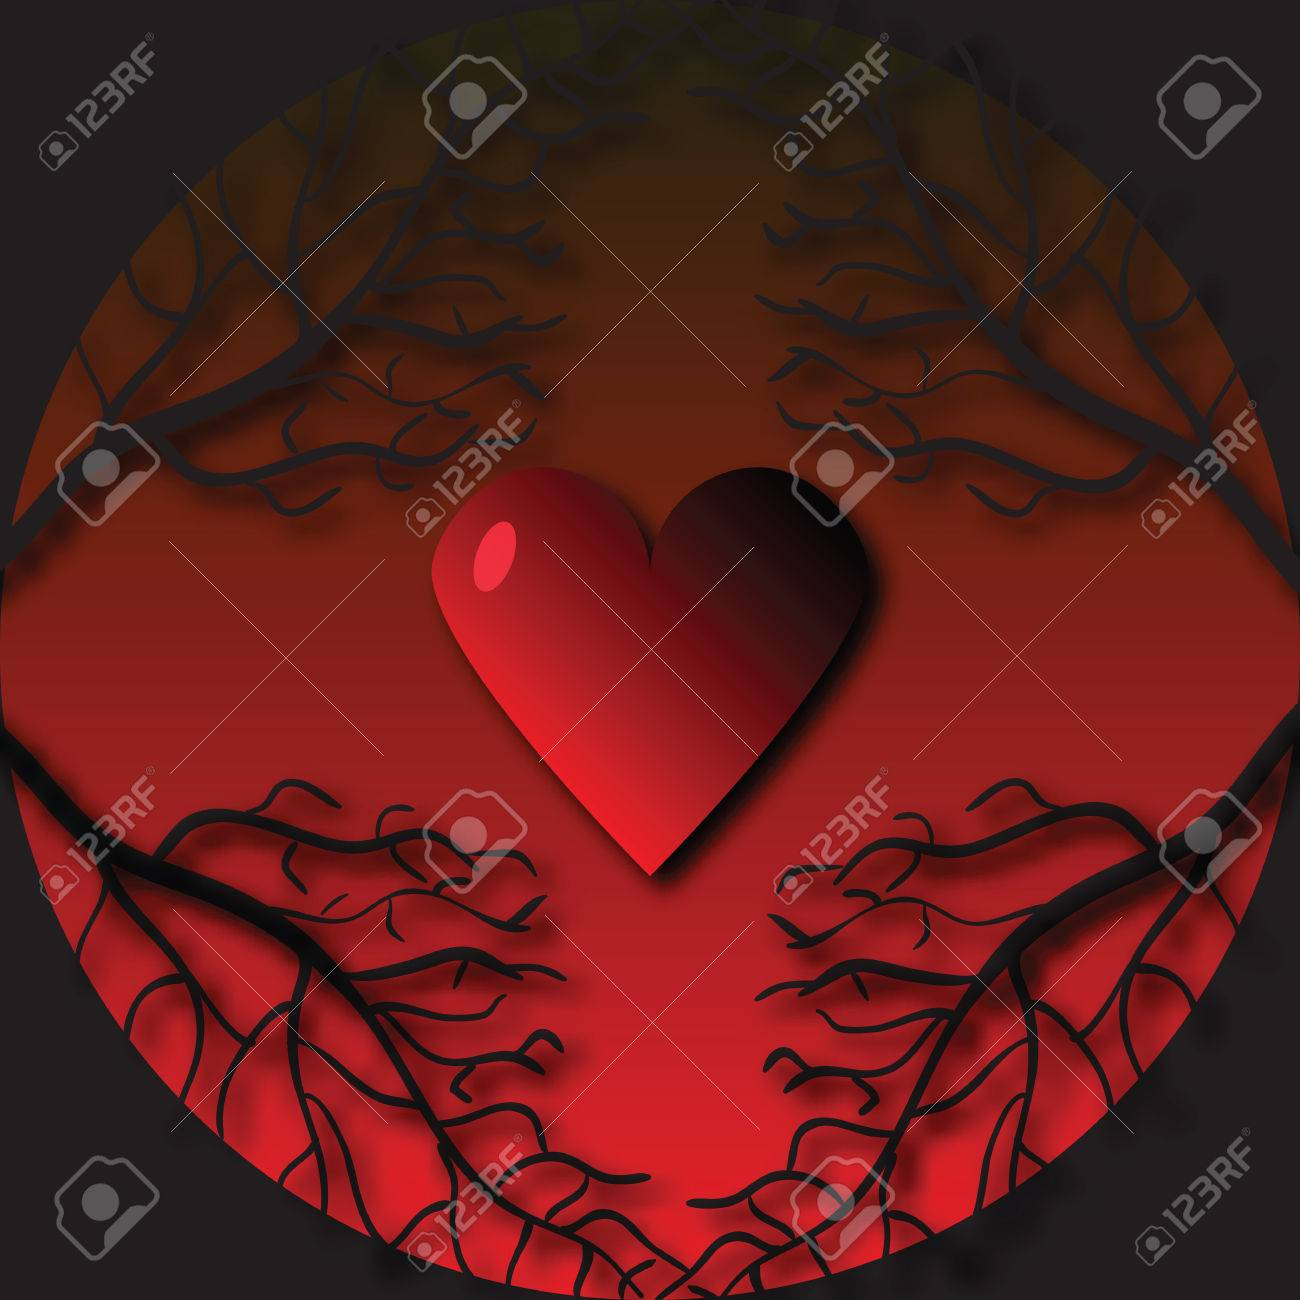 Gothic Frame With Tree Branches And Heart Background On Valentines Day Stock Vector